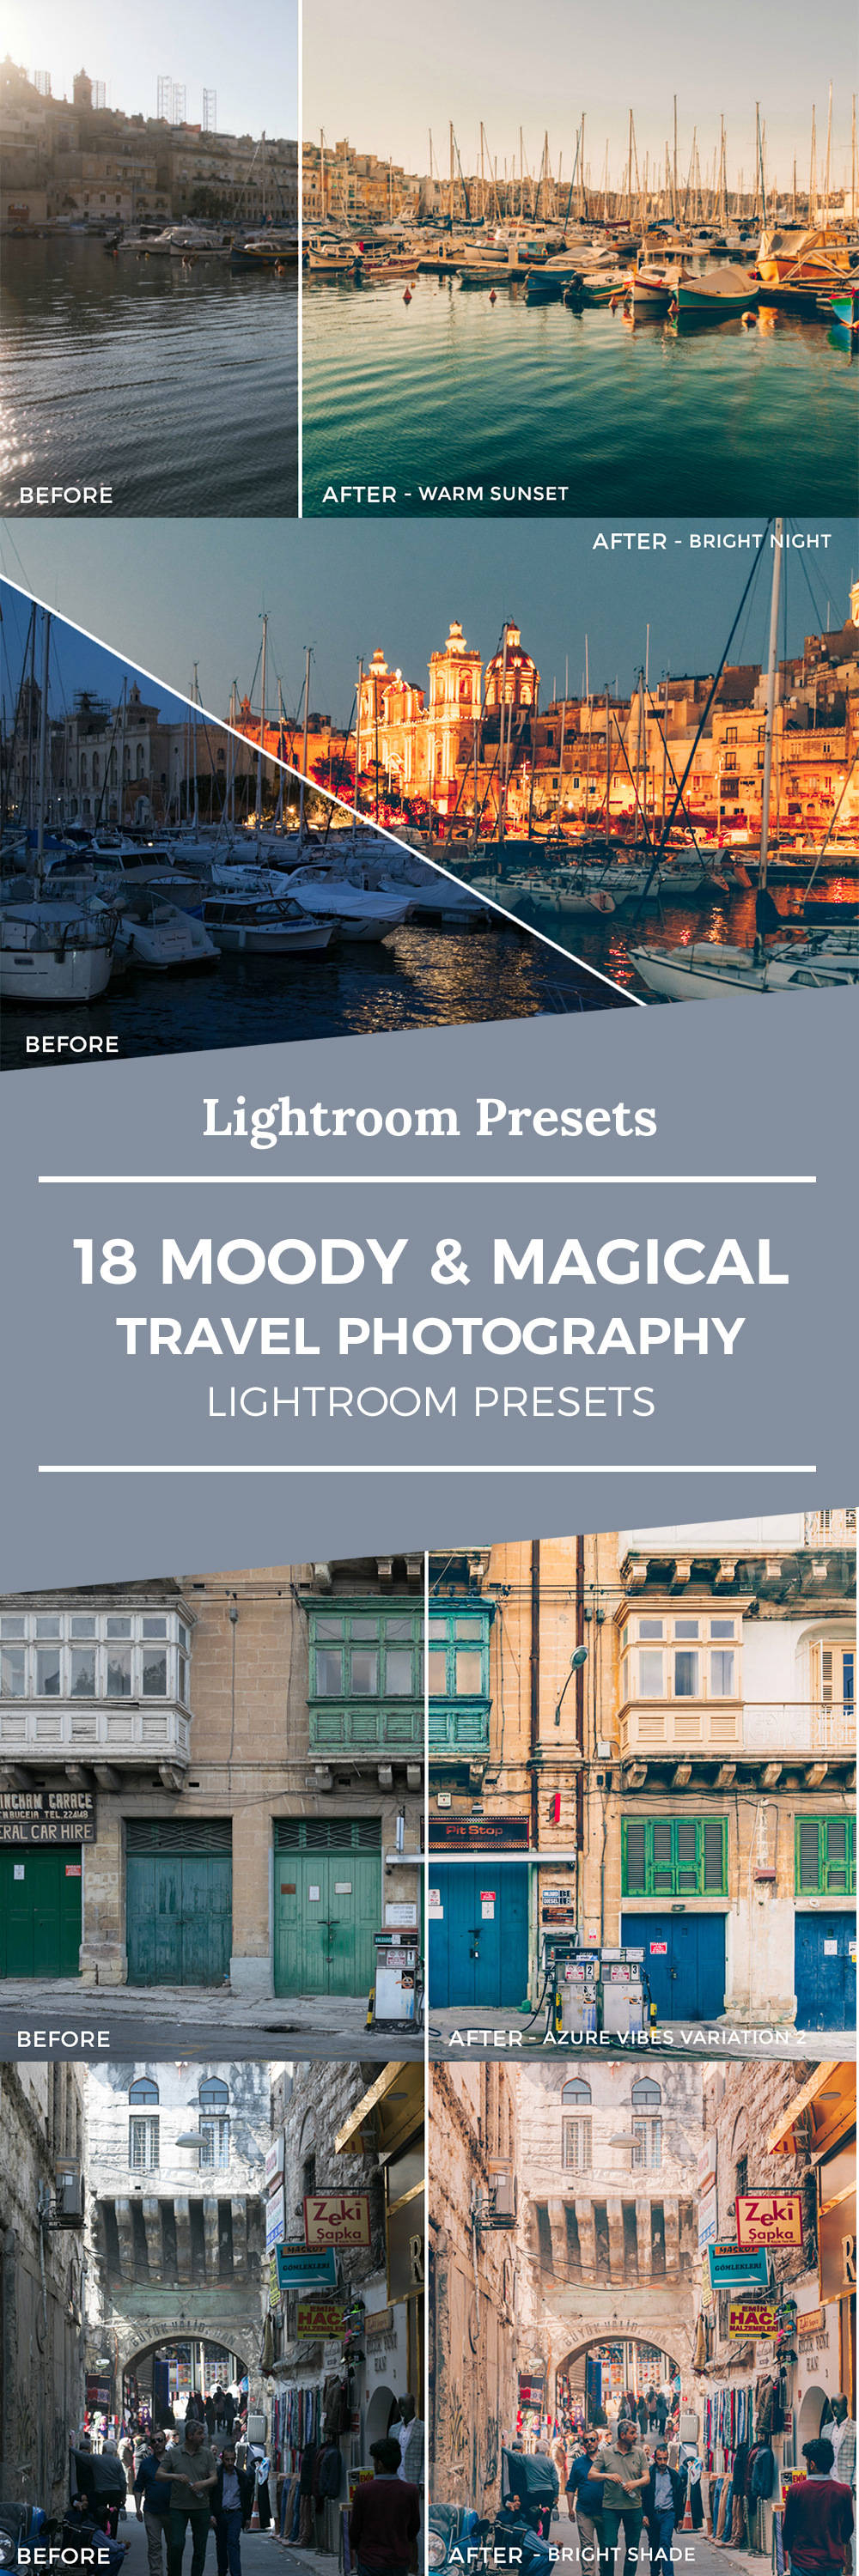 18 Moody & Magical Travel Photography Lightroom Presets - Ever taken photos on your holidays and felt like they just didn't capture the moment correctly? Therefore I created various presets for Lightroom that I personally use for all my travel and lifestyle photos. These Lightroom filters create that magic glow, that warm atmosphere and that cozy yet tropical feeling you've been missing on your photos. The set of filters for your travel photos includes 18 moody and magical presets.